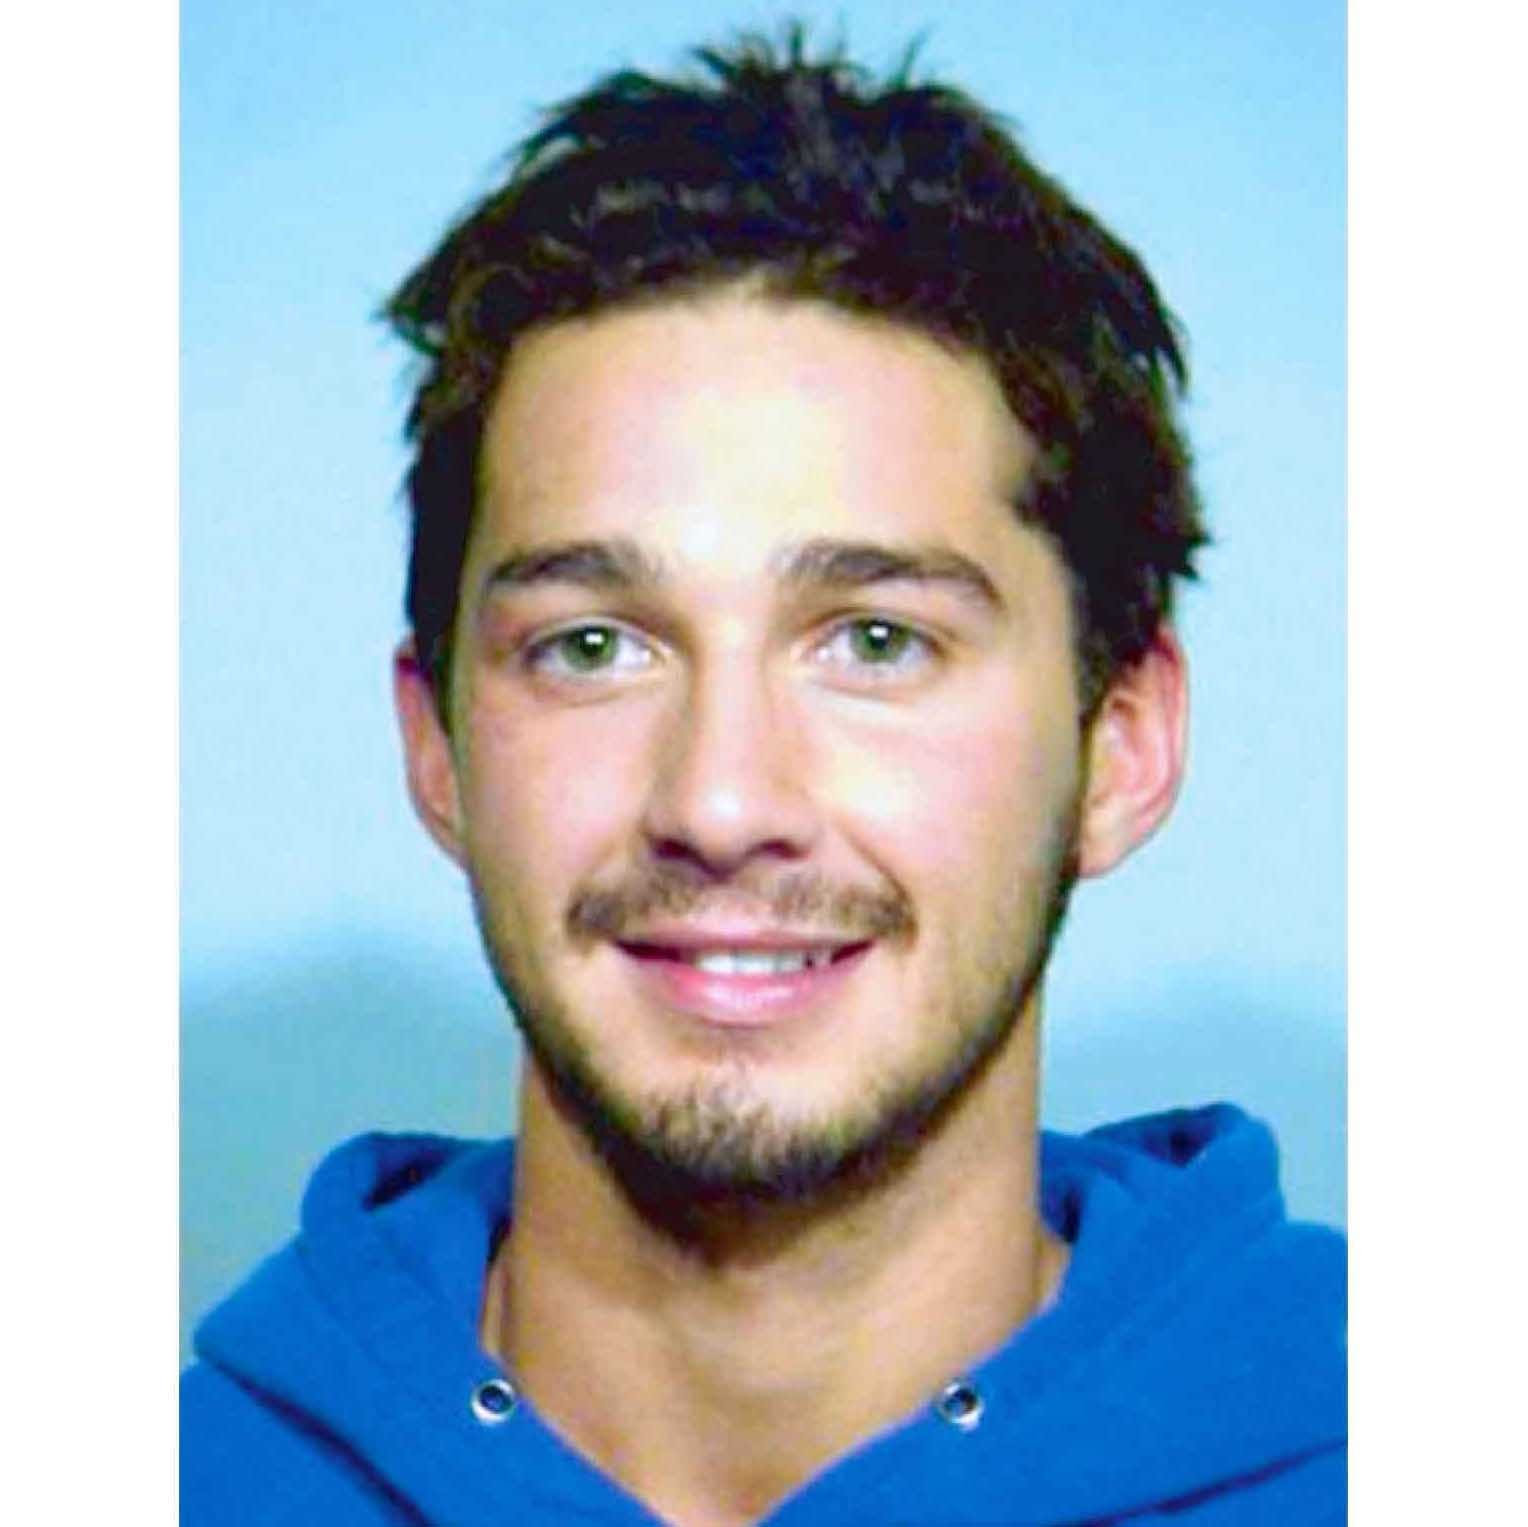 "Shia LeBeouf, 2007   According to LeBeouf's essay ""Error Breeds Sense"" he has been incarcerated five times, starting with a shop-lifting arrest at age 9 for taking Nike Cortezes from a store. In this mugshot, LaBeouf was arrested in Chicago, Illinois in 2007 for misdemeanor trespassing.  He visited a Walgreens  many times in one night in a drunken state and refused to leave after several requests by security. Charges were later dropped."